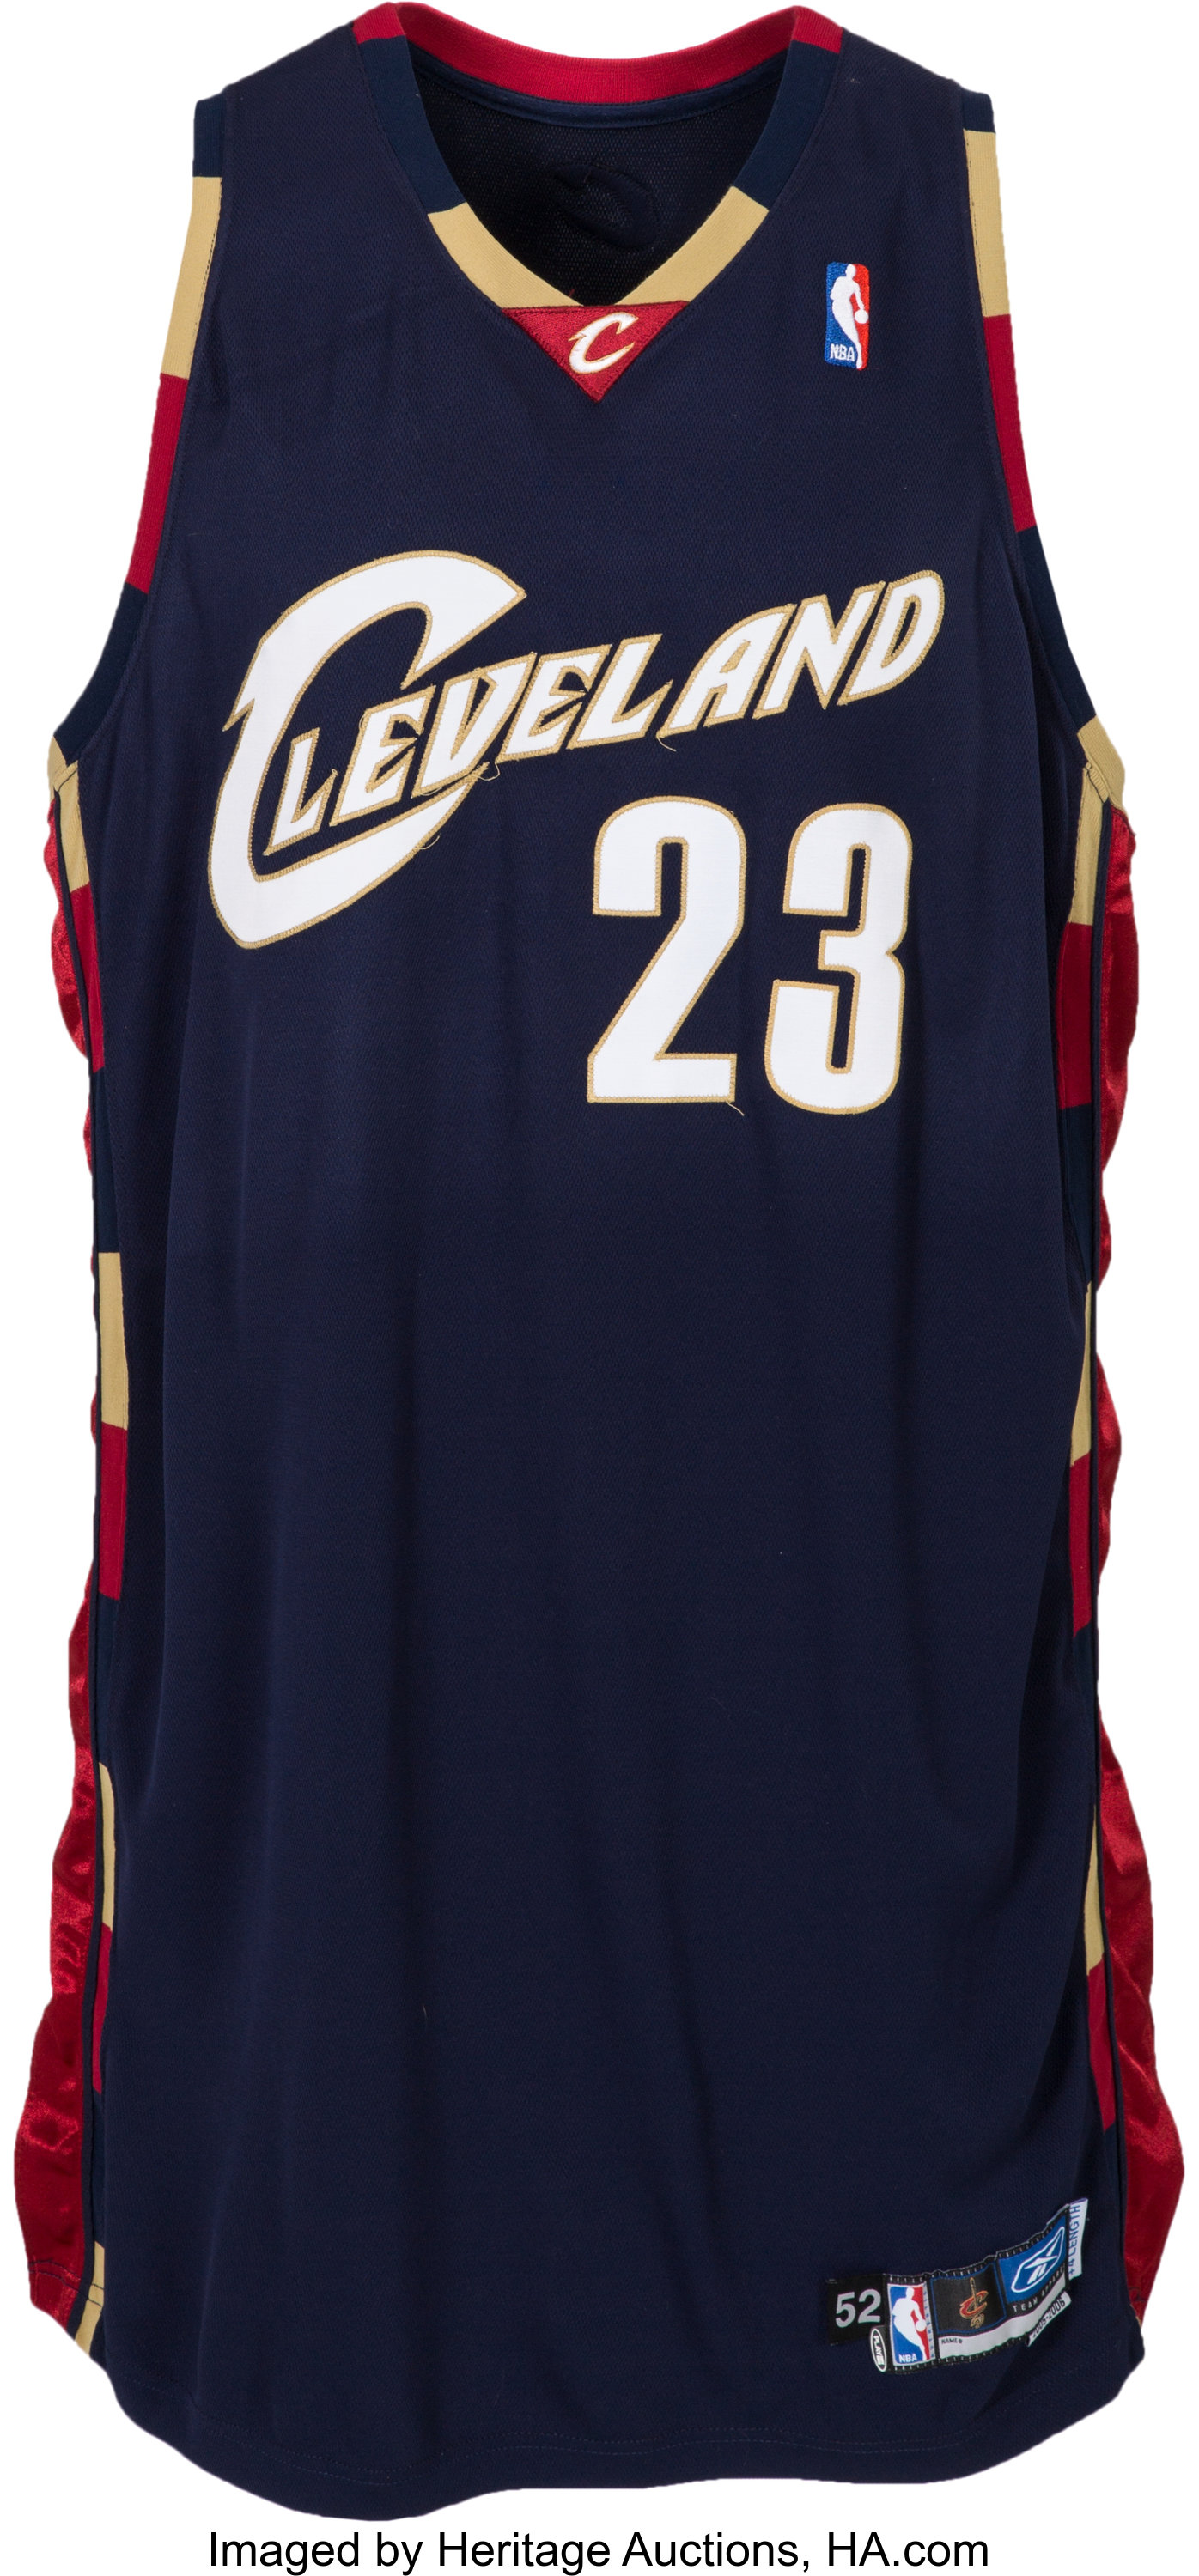 the best attitude 72a96 3e039 2005-06 LeBron James Game Worn Cleveland Cavaliers Jersey ...